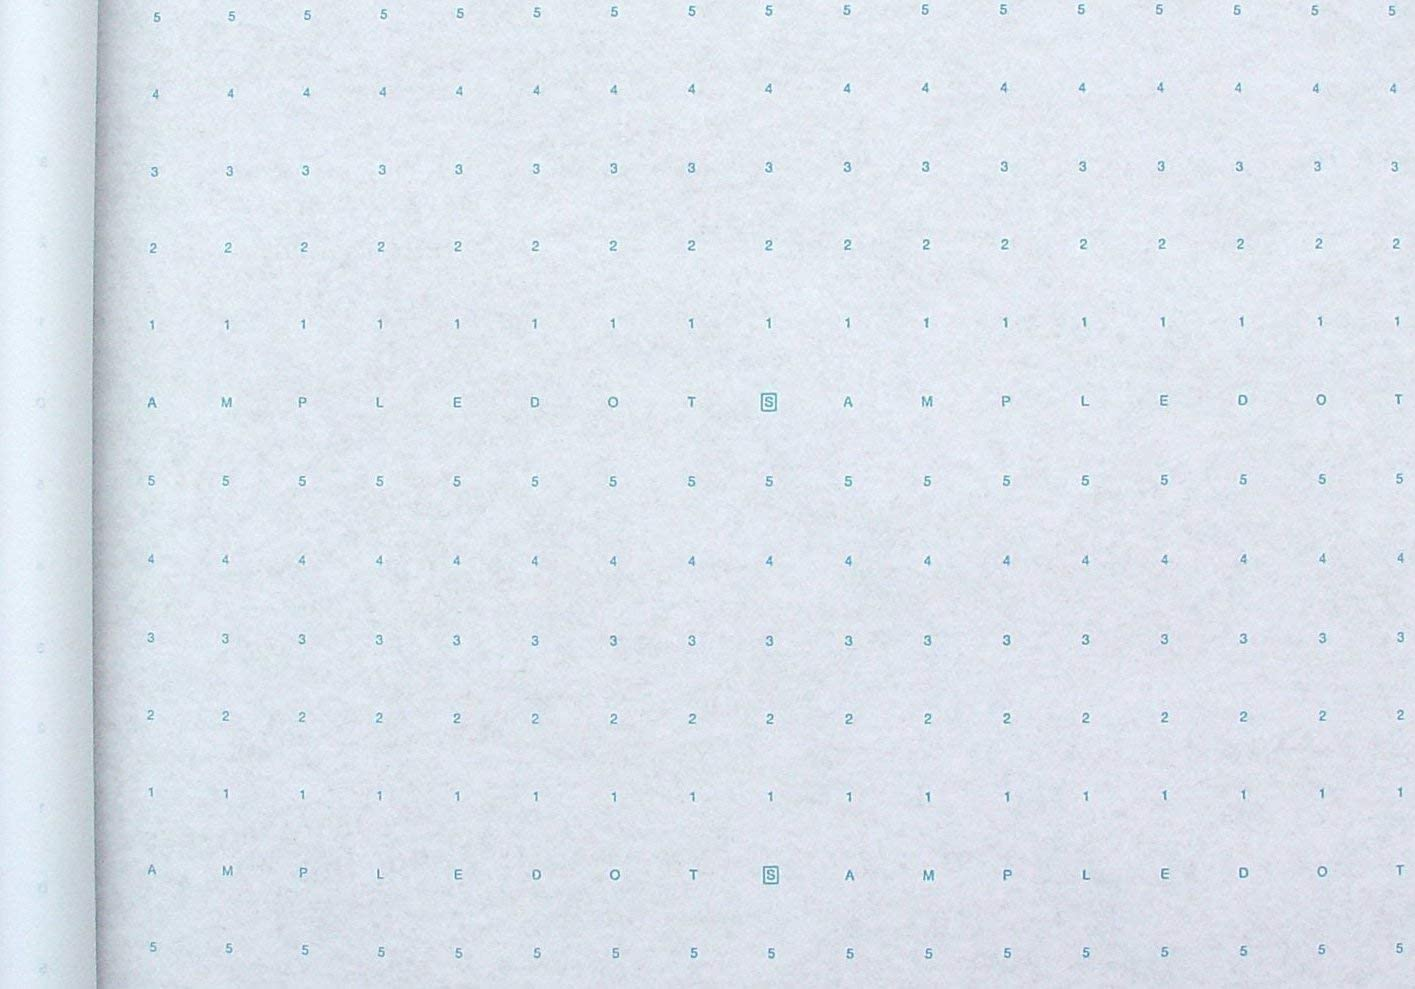 1 Roll of Alpha Numeric Dotted Marking Paper/Pattern Paper (48 inches x 15 Yards) Optimum Performance - Made in The USA